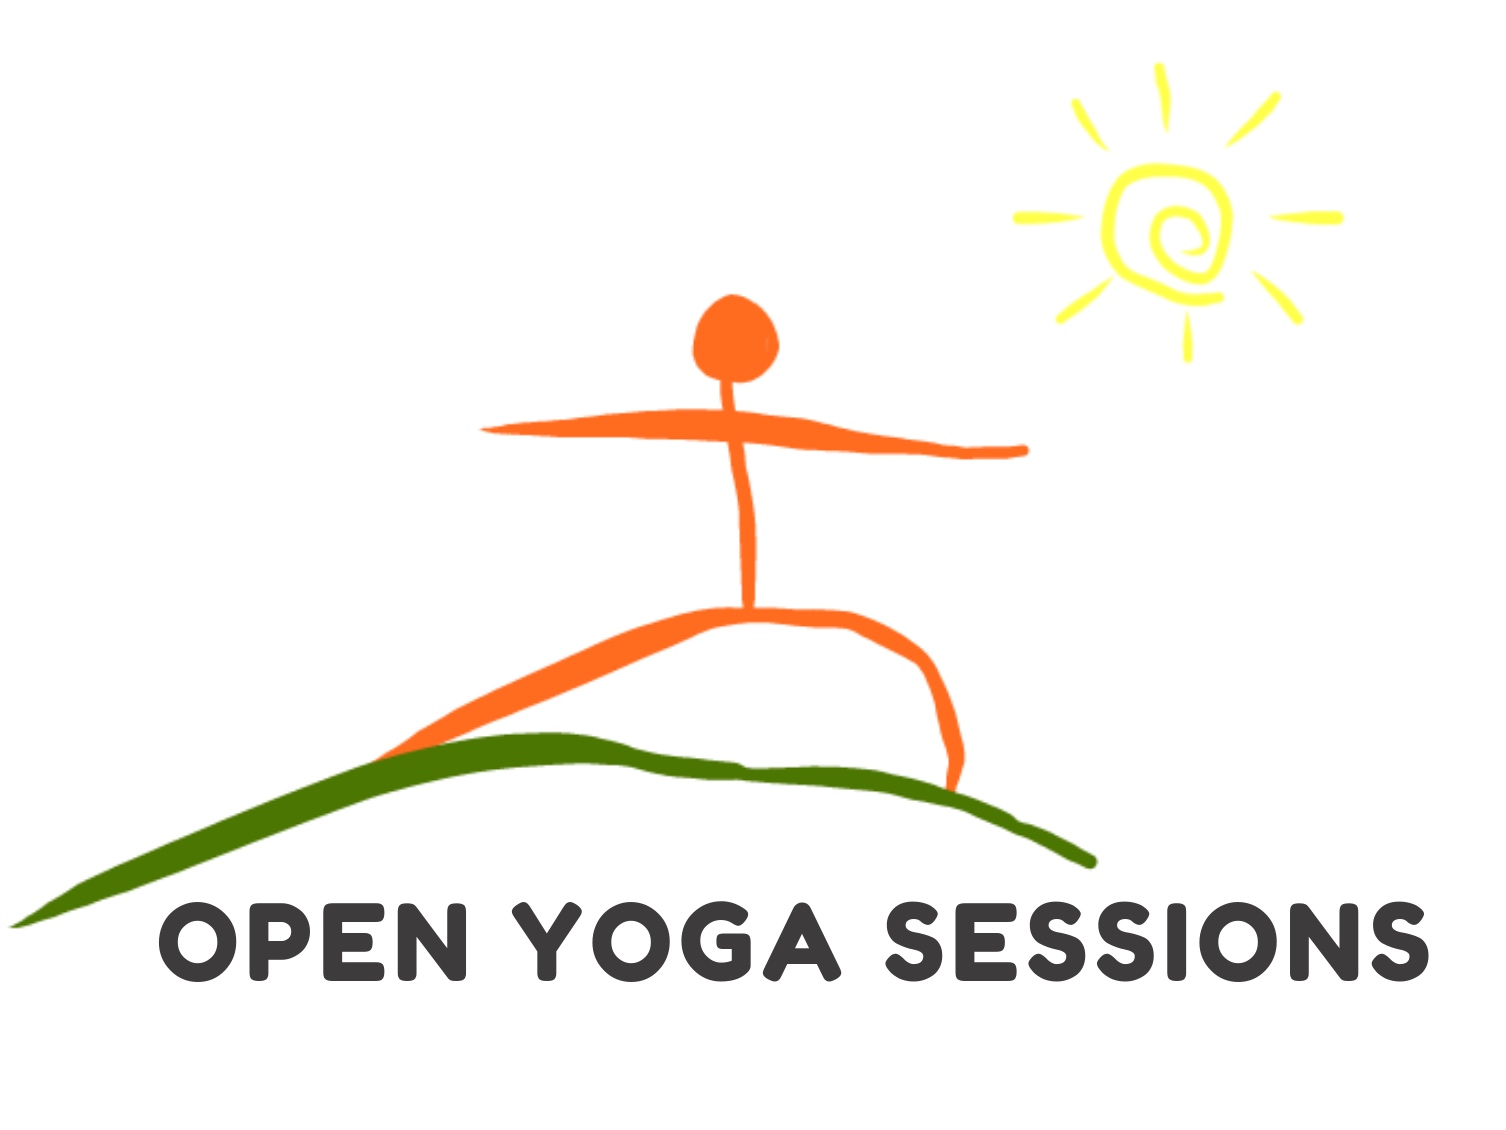 Open Yoga Sessions